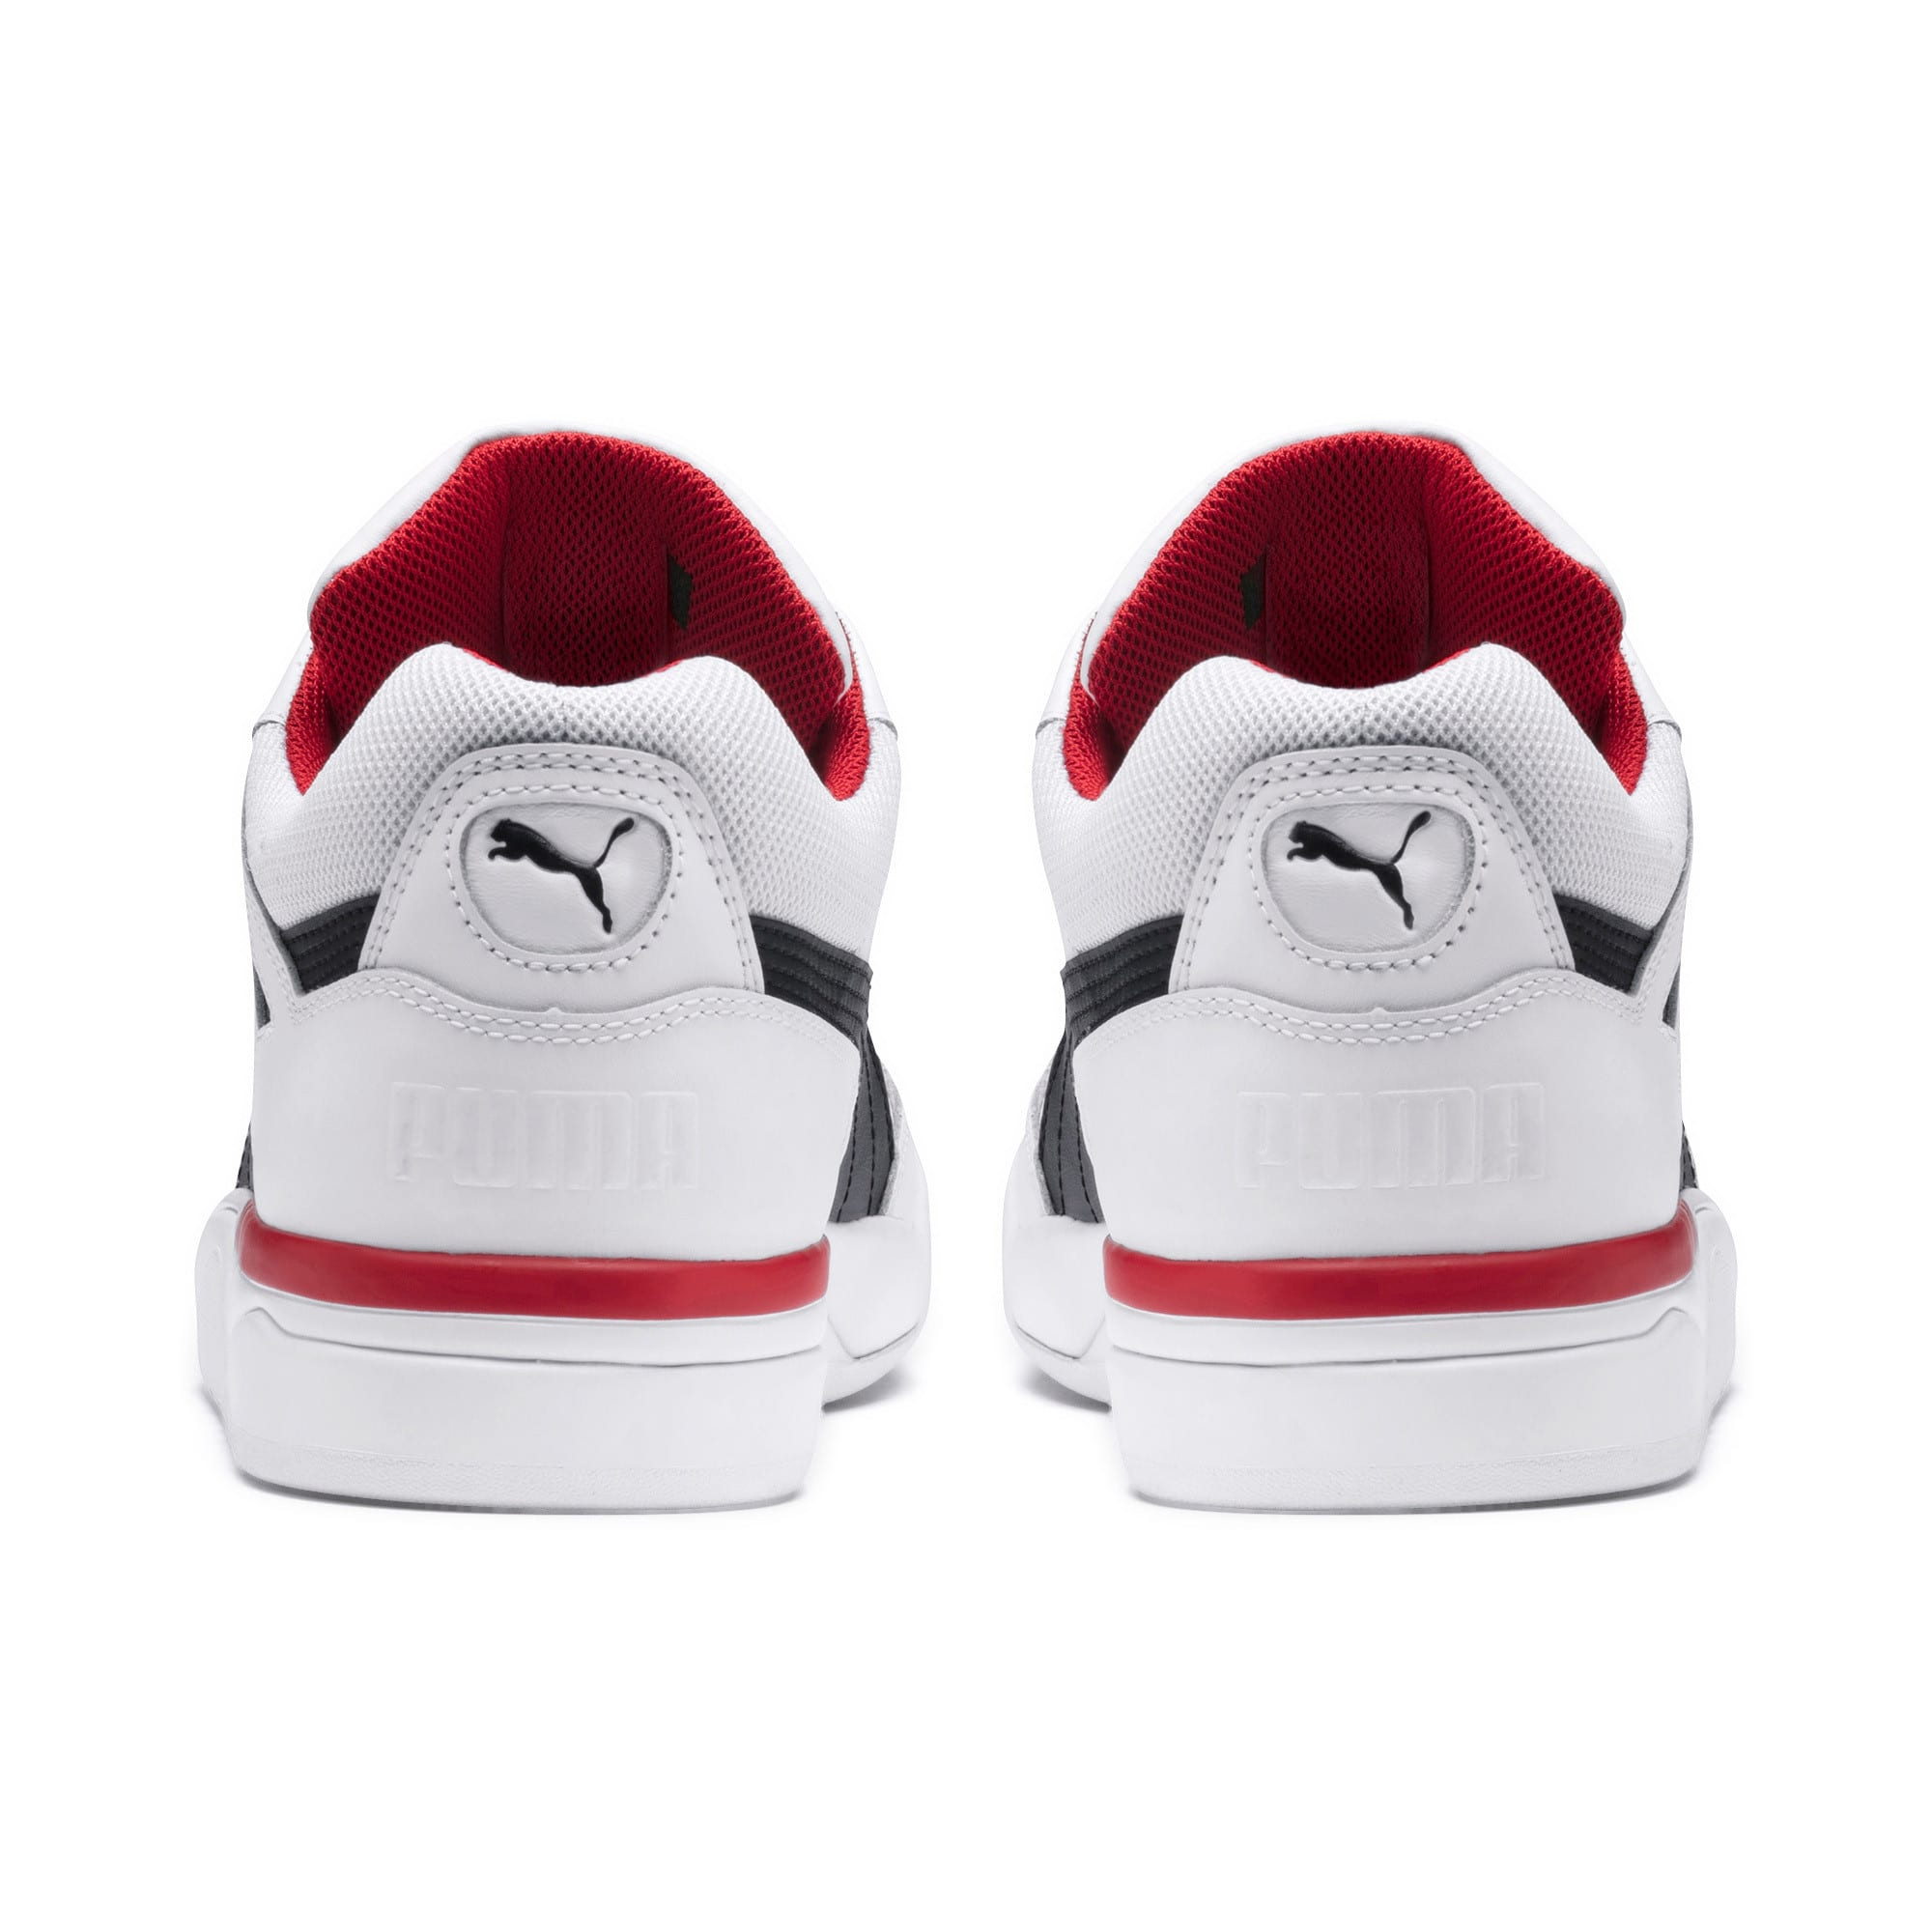 Anteprima 3 di Palace Guard Men's Basketball Trainers, Puma White-Puma Black-red, medio